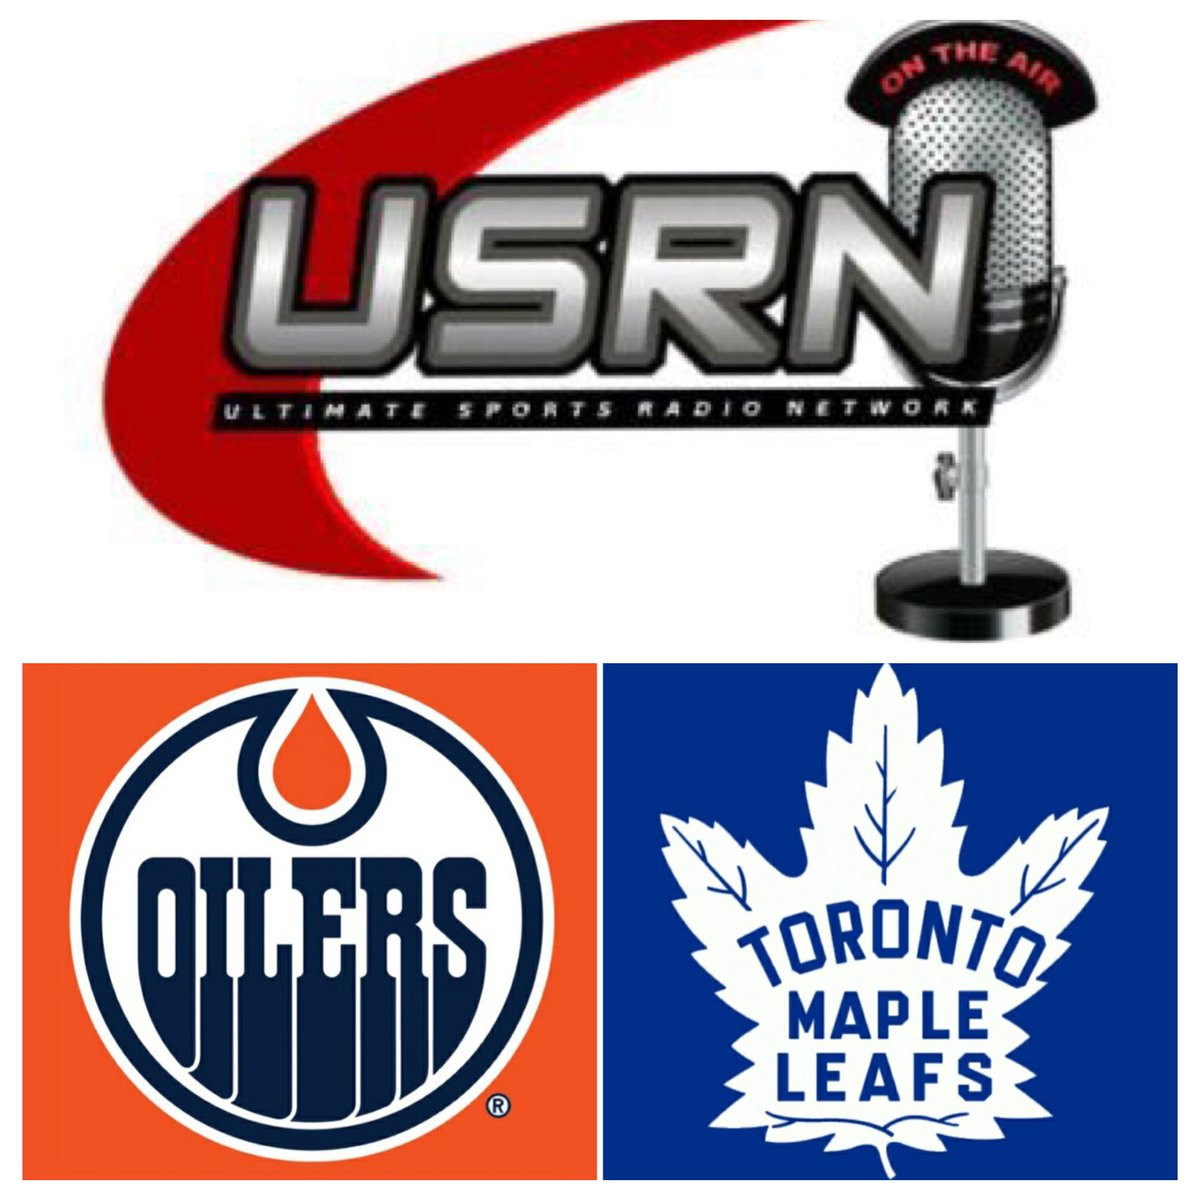 Tune in for a live call of #Oilers @ #Penguins on #USRN2! #EDvsPIT #LetsGoOilers#LetsGoPens#USRN #UltimateSportsRadioNetwork @USRNRadio